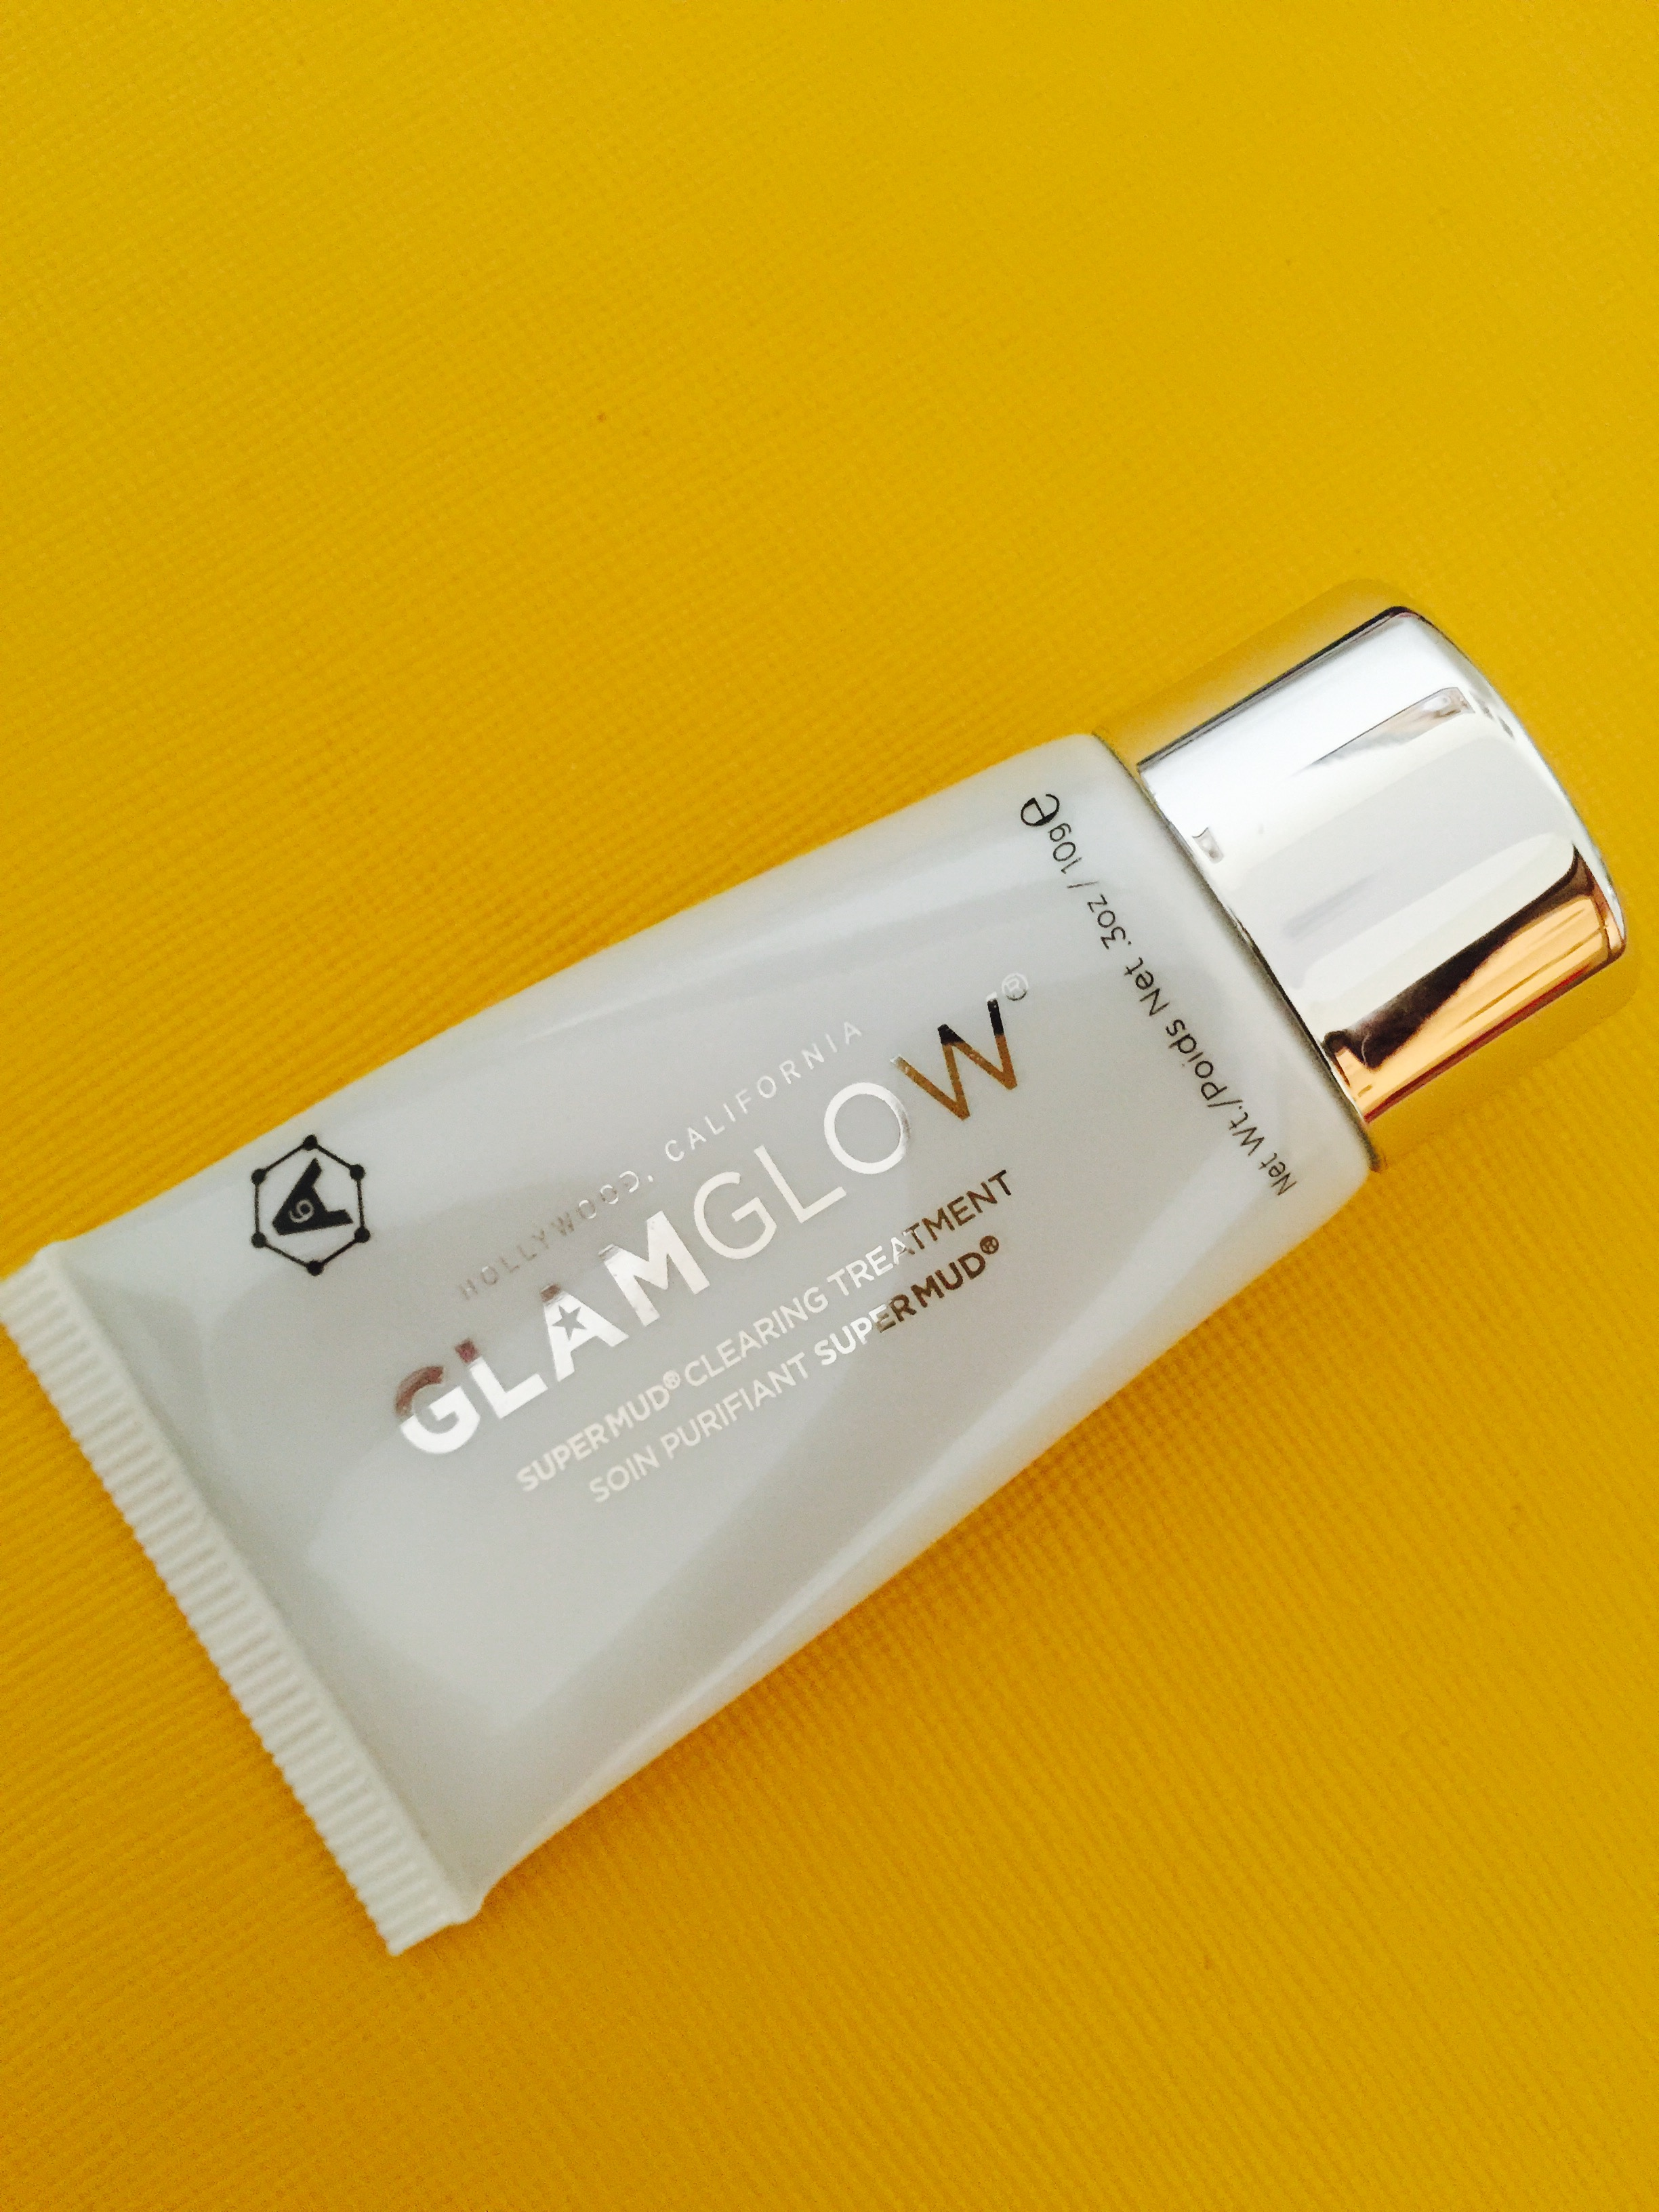 Glam glow super mud clearing treatment